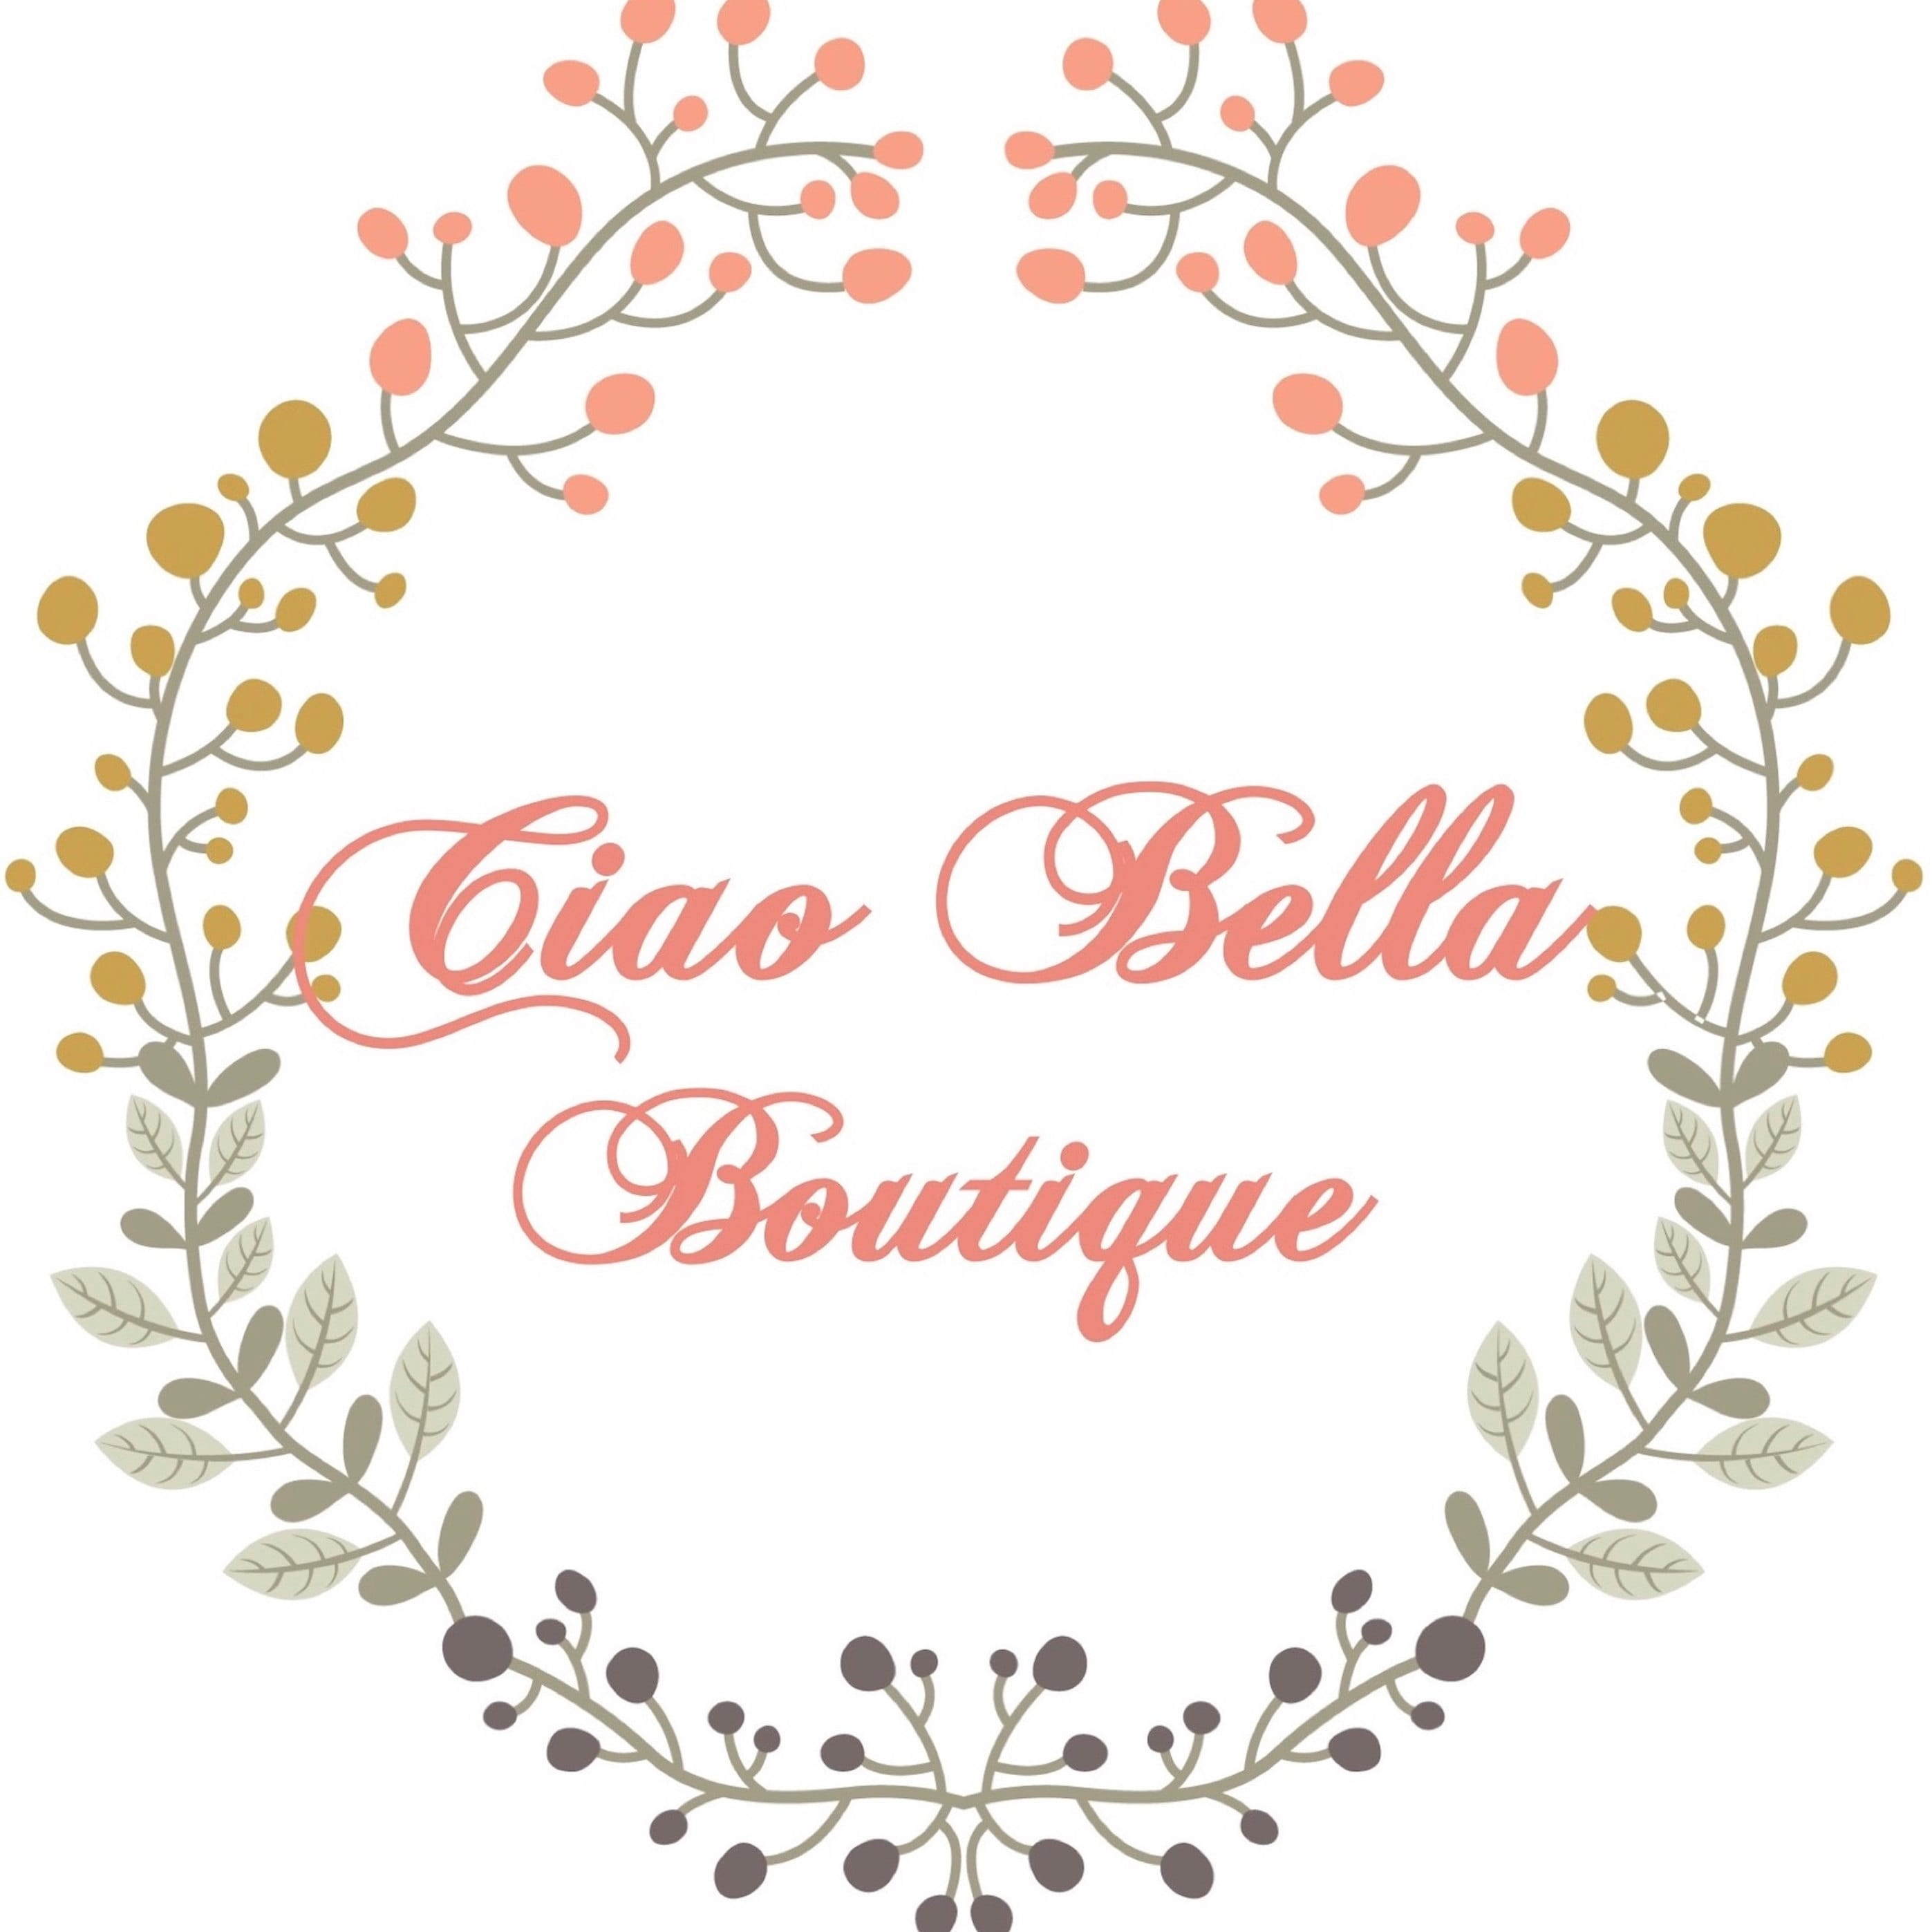 aff2a72626a Ciao Bella Boutique by CiaoBellaMonogram on Etsy